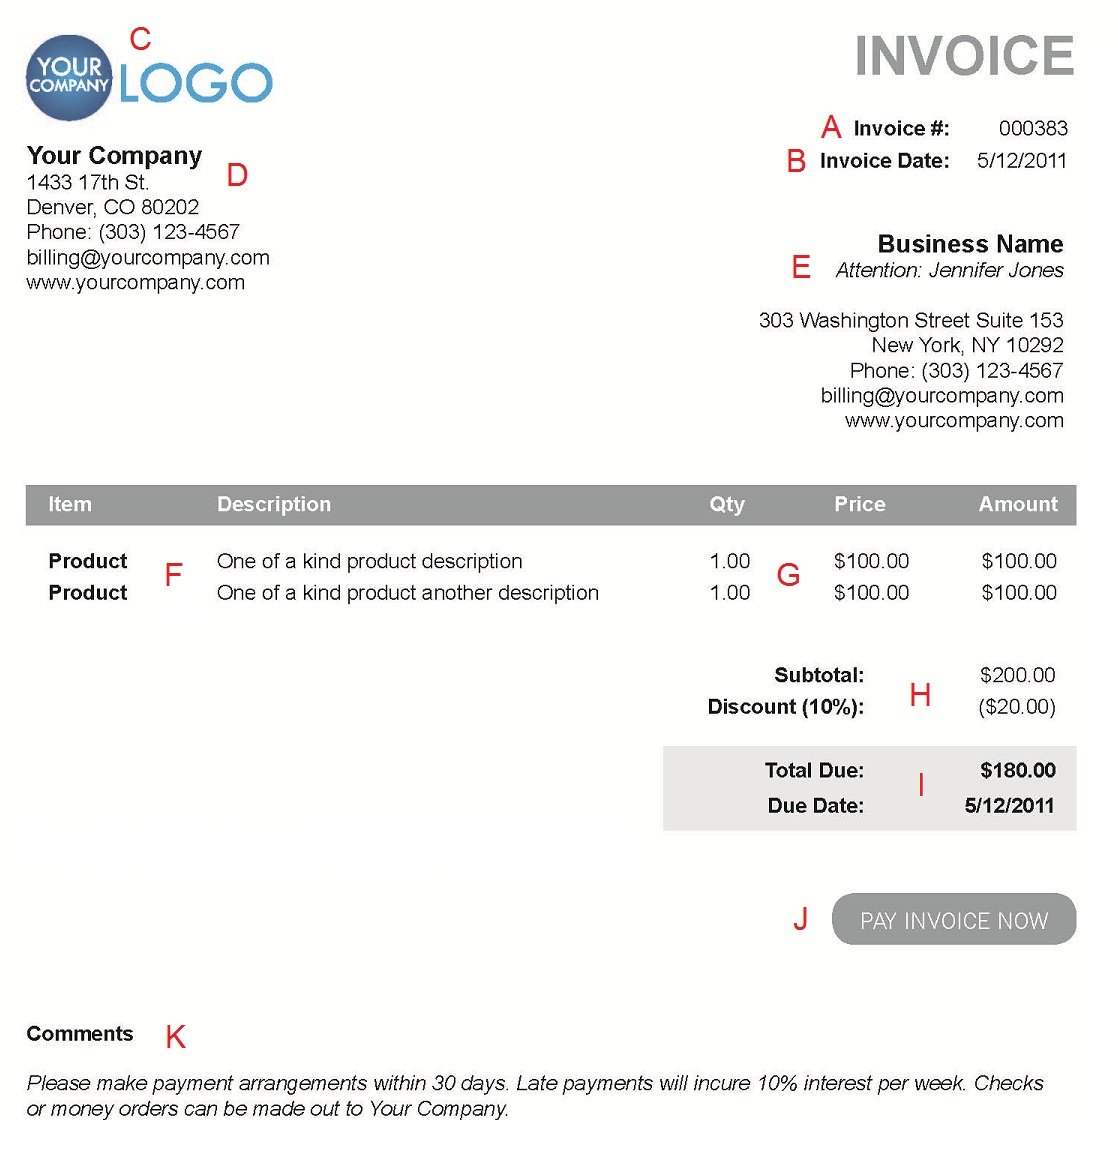 Totallocalus  Surprising The  Different Sections Of An Electronic Payment Invoice With Exquisite A  With Astounding How To Pay Paypal Invoice Also Company Invoice In Addition Invoice Statement Template Free And Lawn Invoice As Well As Provide An Invoice Additionally Standard Commercial Invoice From Paysimplecom With Totallocalus  Exquisite The  Different Sections Of An Electronic Payment Invoice With Astounding A  And Surprising How To Pay Paypal Invoice Also Company Invoice In Addition Invoice Statement Template Free From Paysimplecom